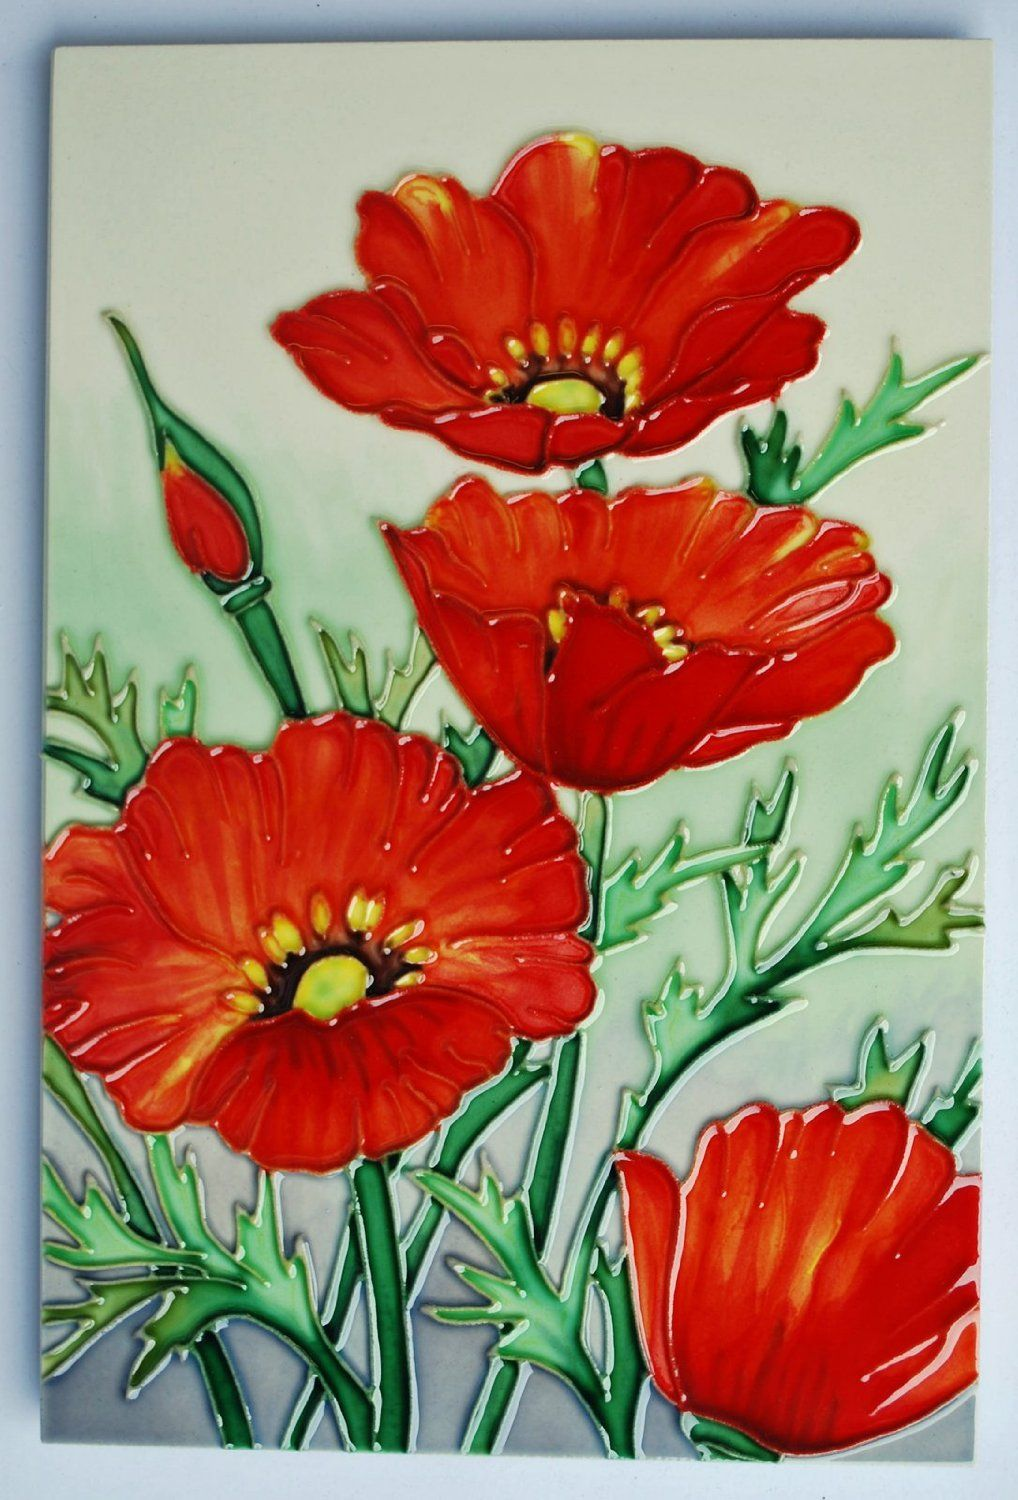 Red Poppies Hand Crafted Ceramic Wall Art 603 Amazon Co Uk Kitchen Home Ceramic Wall Art Red Poppies Art Gift